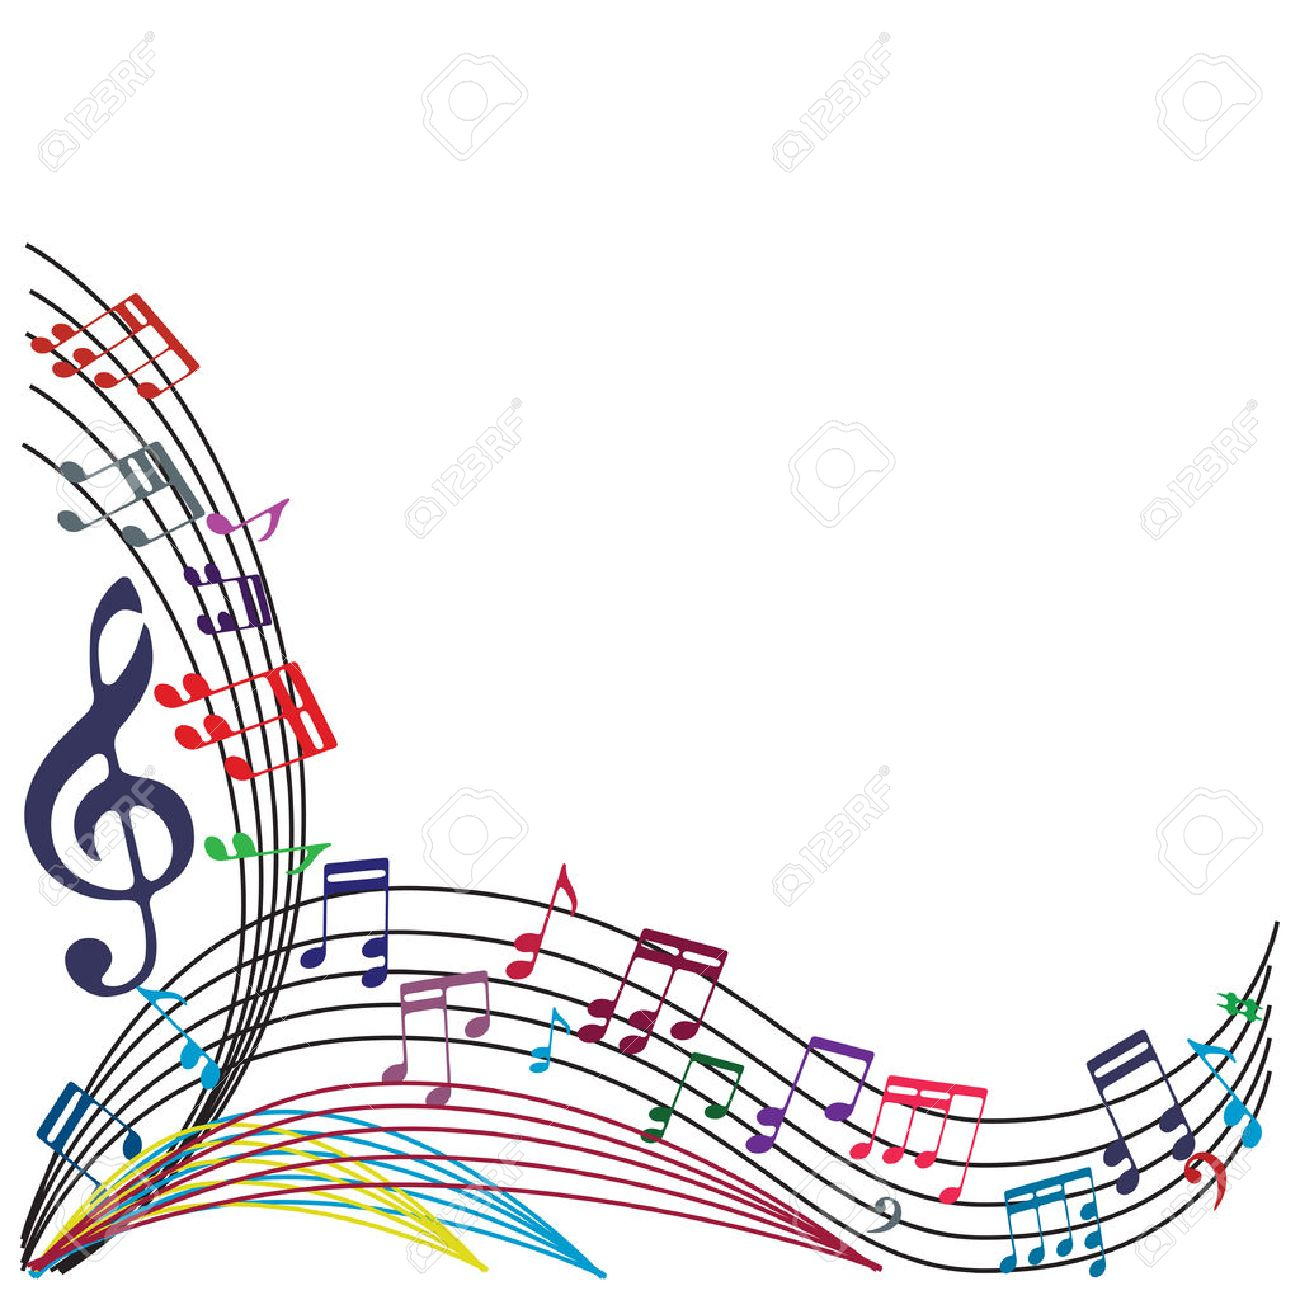 Music notes background, stylish musical theme composition, vector illustration. Stock Vector - 33609781